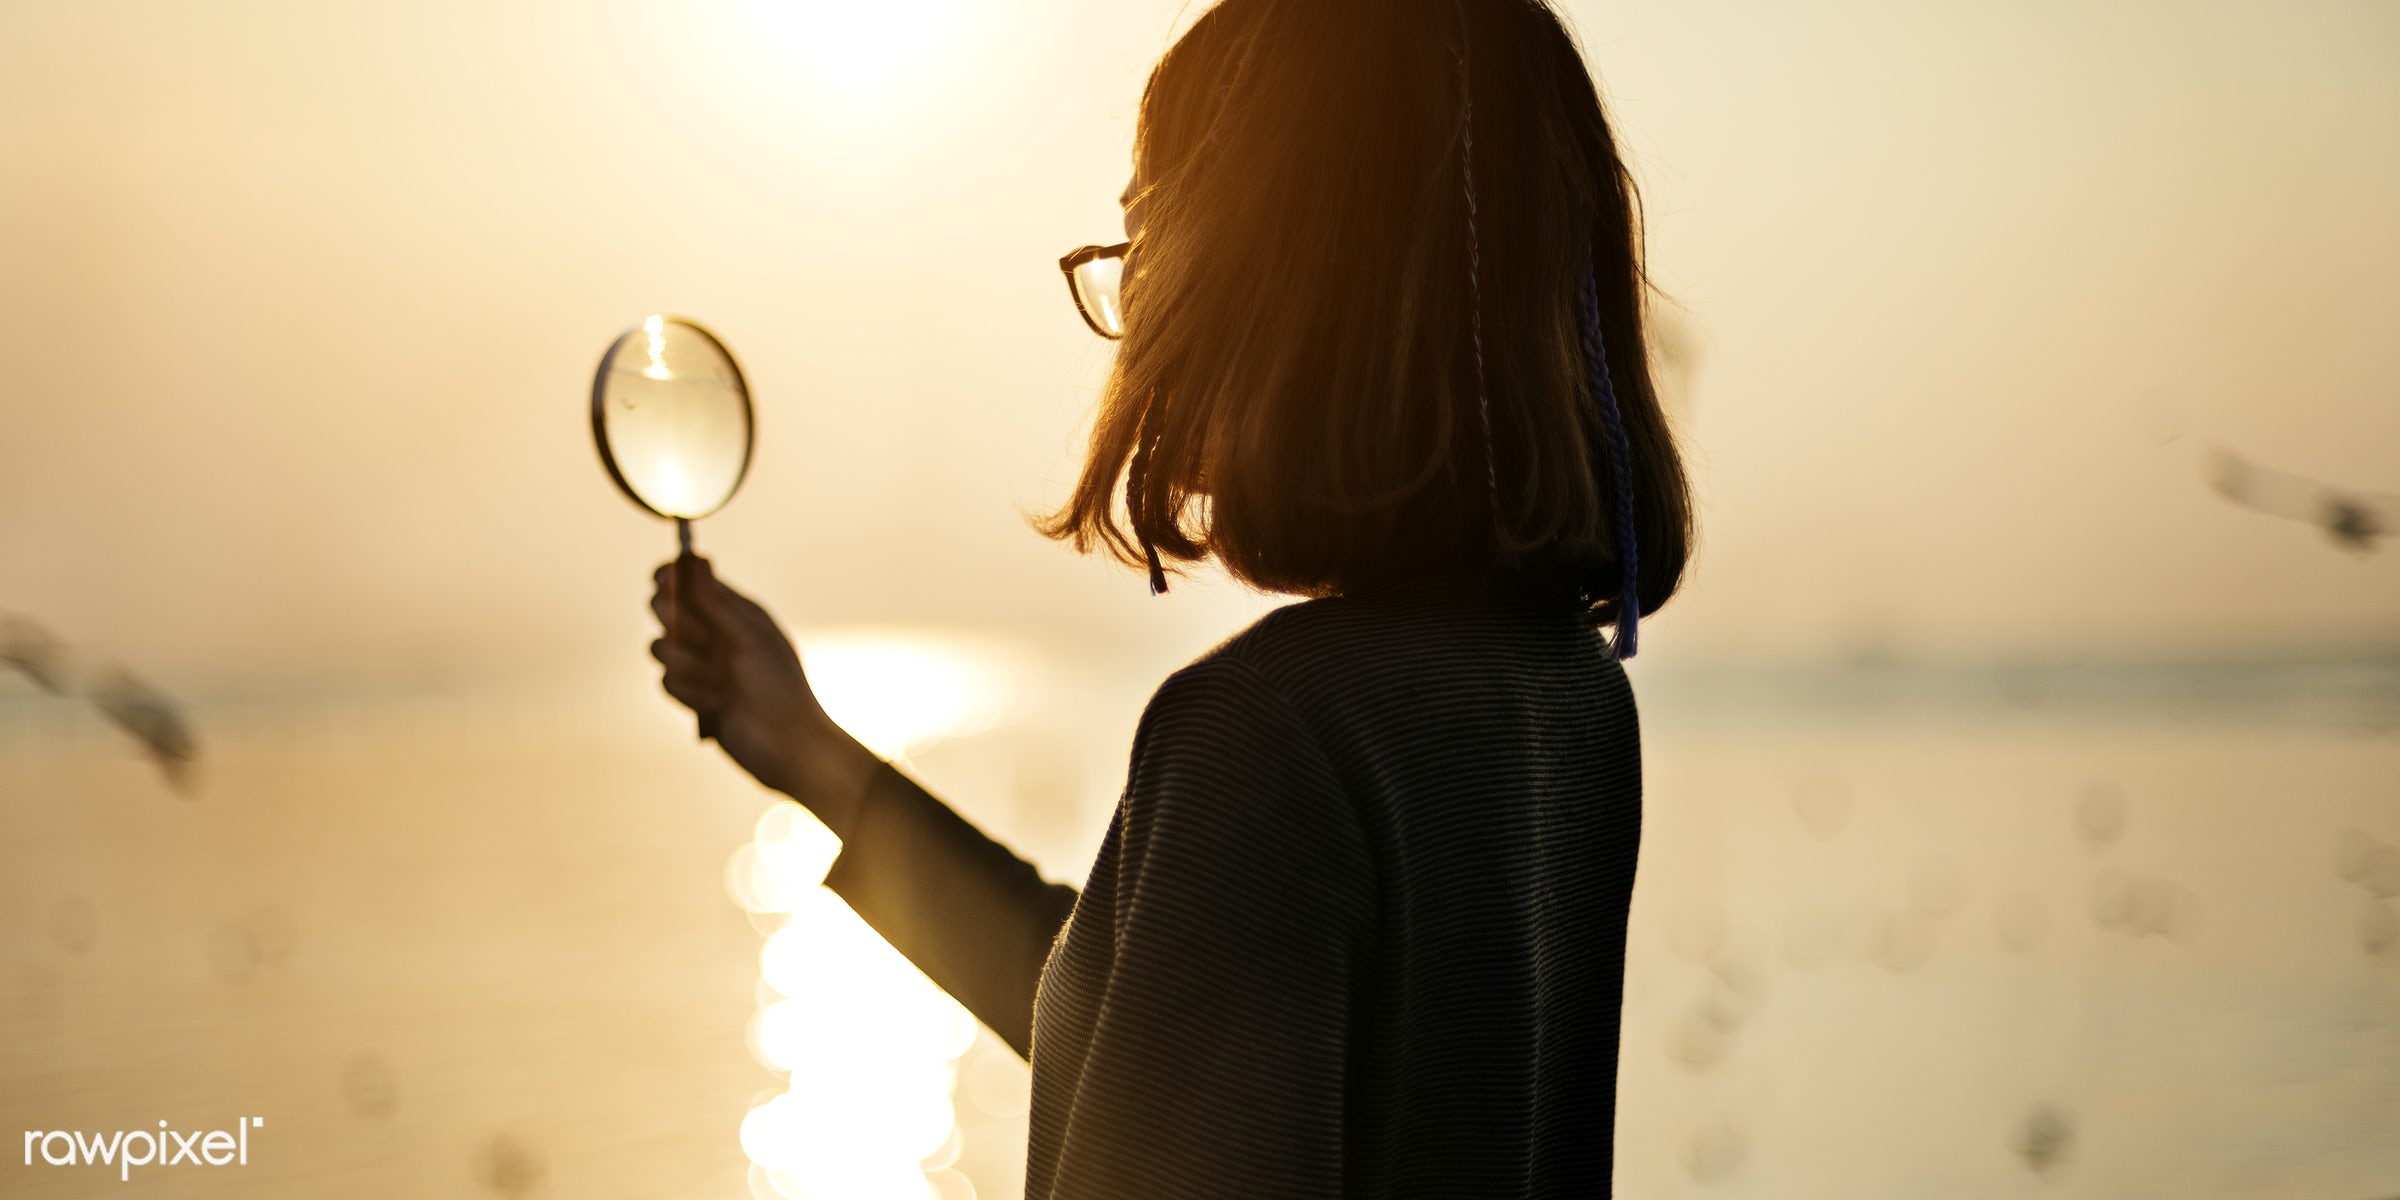 Silhouette of woman holding magnifying glass - girl, woman, holding, magnifying, glass, silhouette, sunset, nature, sky,...